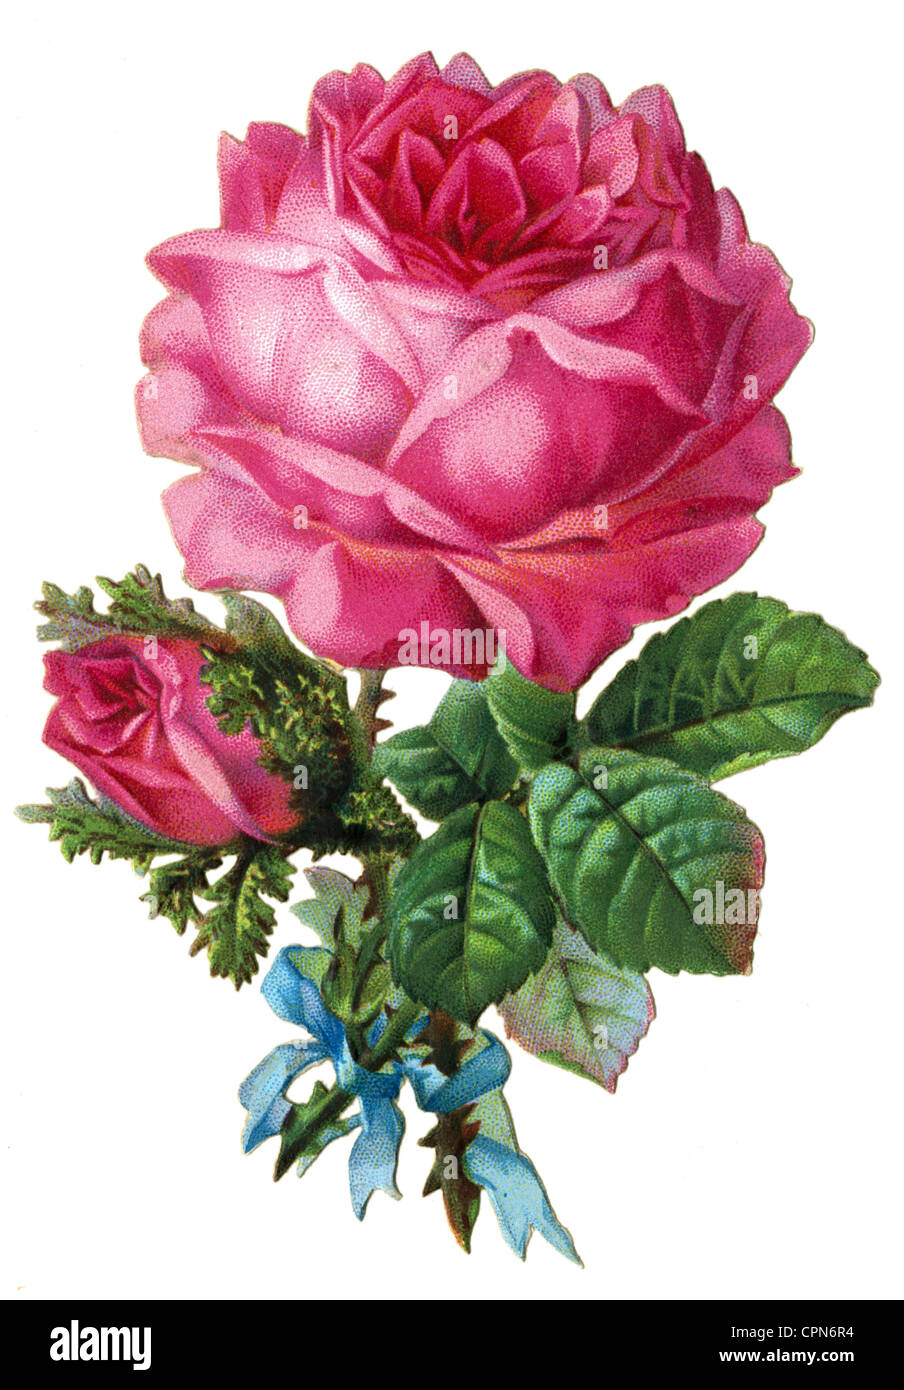 kitsch/cards/souvenir, rose, decoration, scrap-picture, Germany, circa 1885, Additional-Rights-Clearences-NA - Stock Image